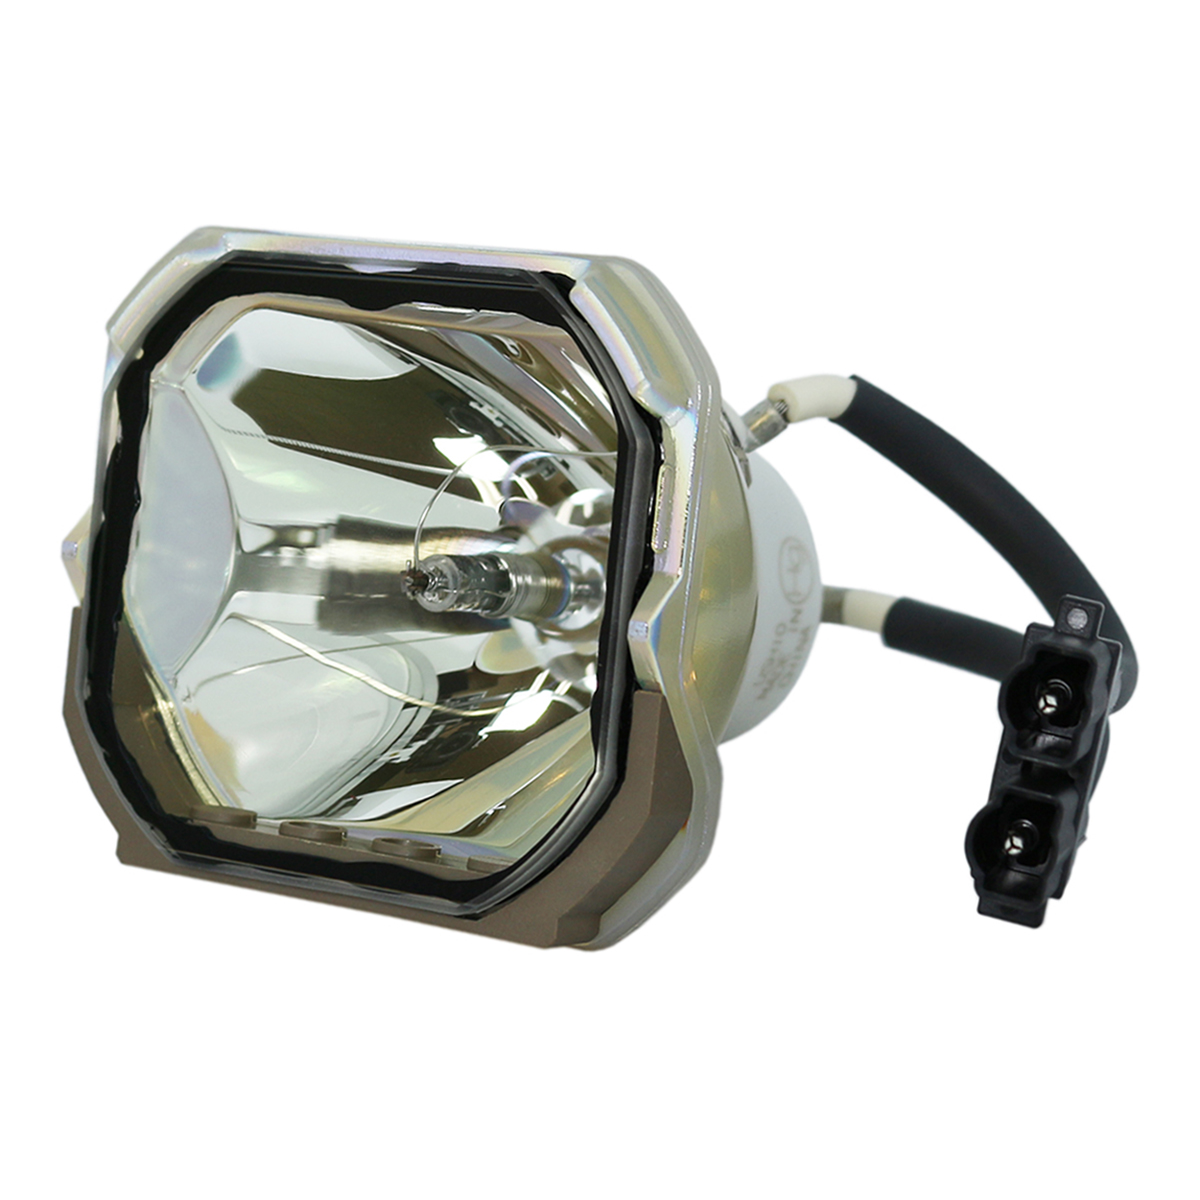 Compatible Bare Bulb DT00331 DT-00331 for HITACHI CP-S310 CP-S310W CP-X320 CP-X320W CP-X325 Projector Lamp Bulb without housing wholesale compatible bare bulb for phoenix shp69 projector lamp bulb